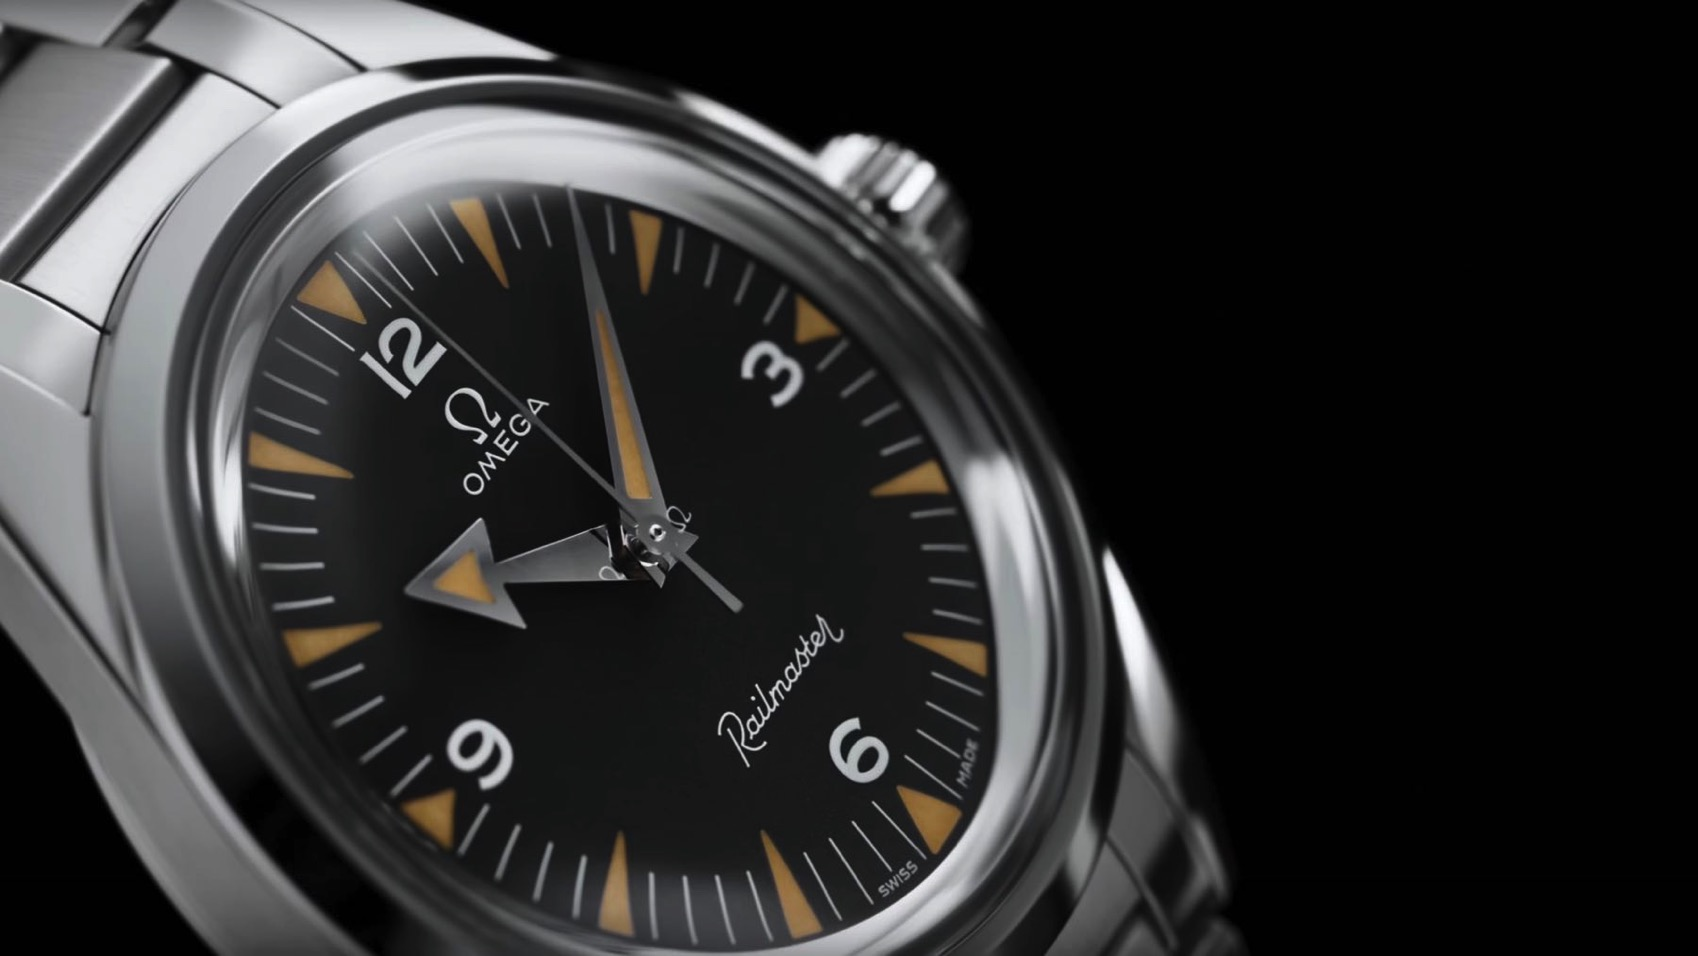 07 OMEGA 1957 Trilogy Limit Edition Railmaster